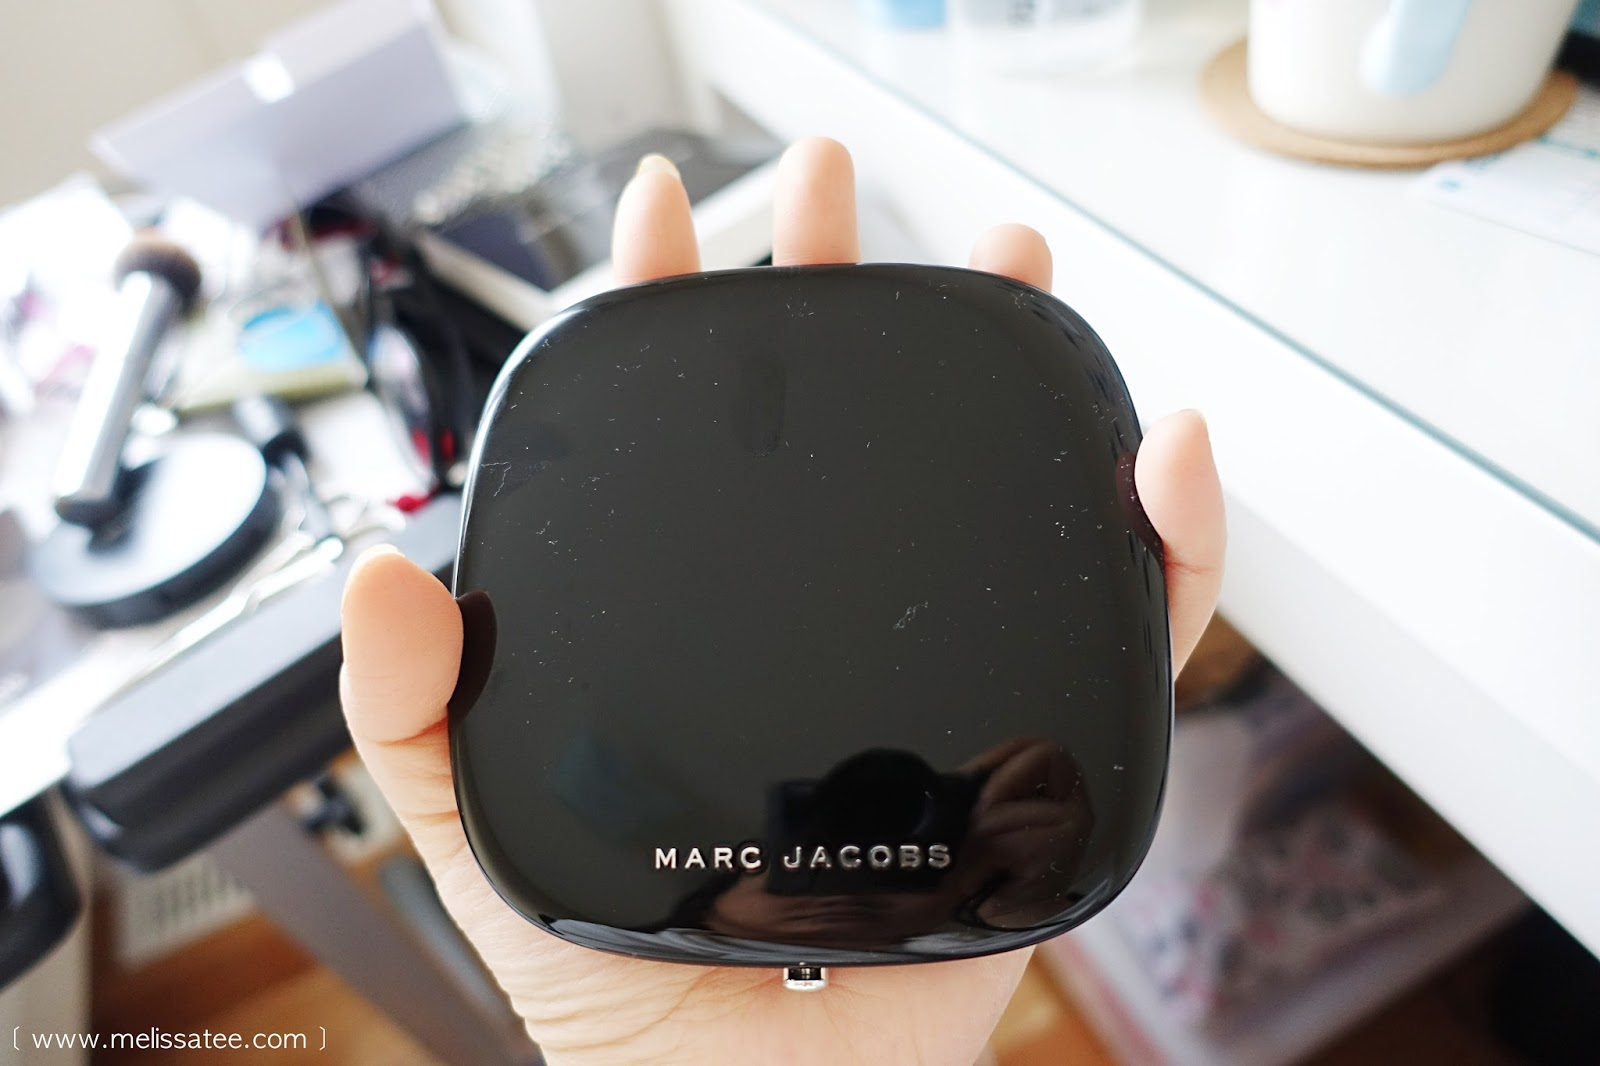 marc jacobs beauty, marc jacobs instamarc, marc jacobs instamarc light filtering contour powder, hi-fi light filtering contour powder, hi-fi contour powder review, marc jacobs beauty hi-fi contour powder review